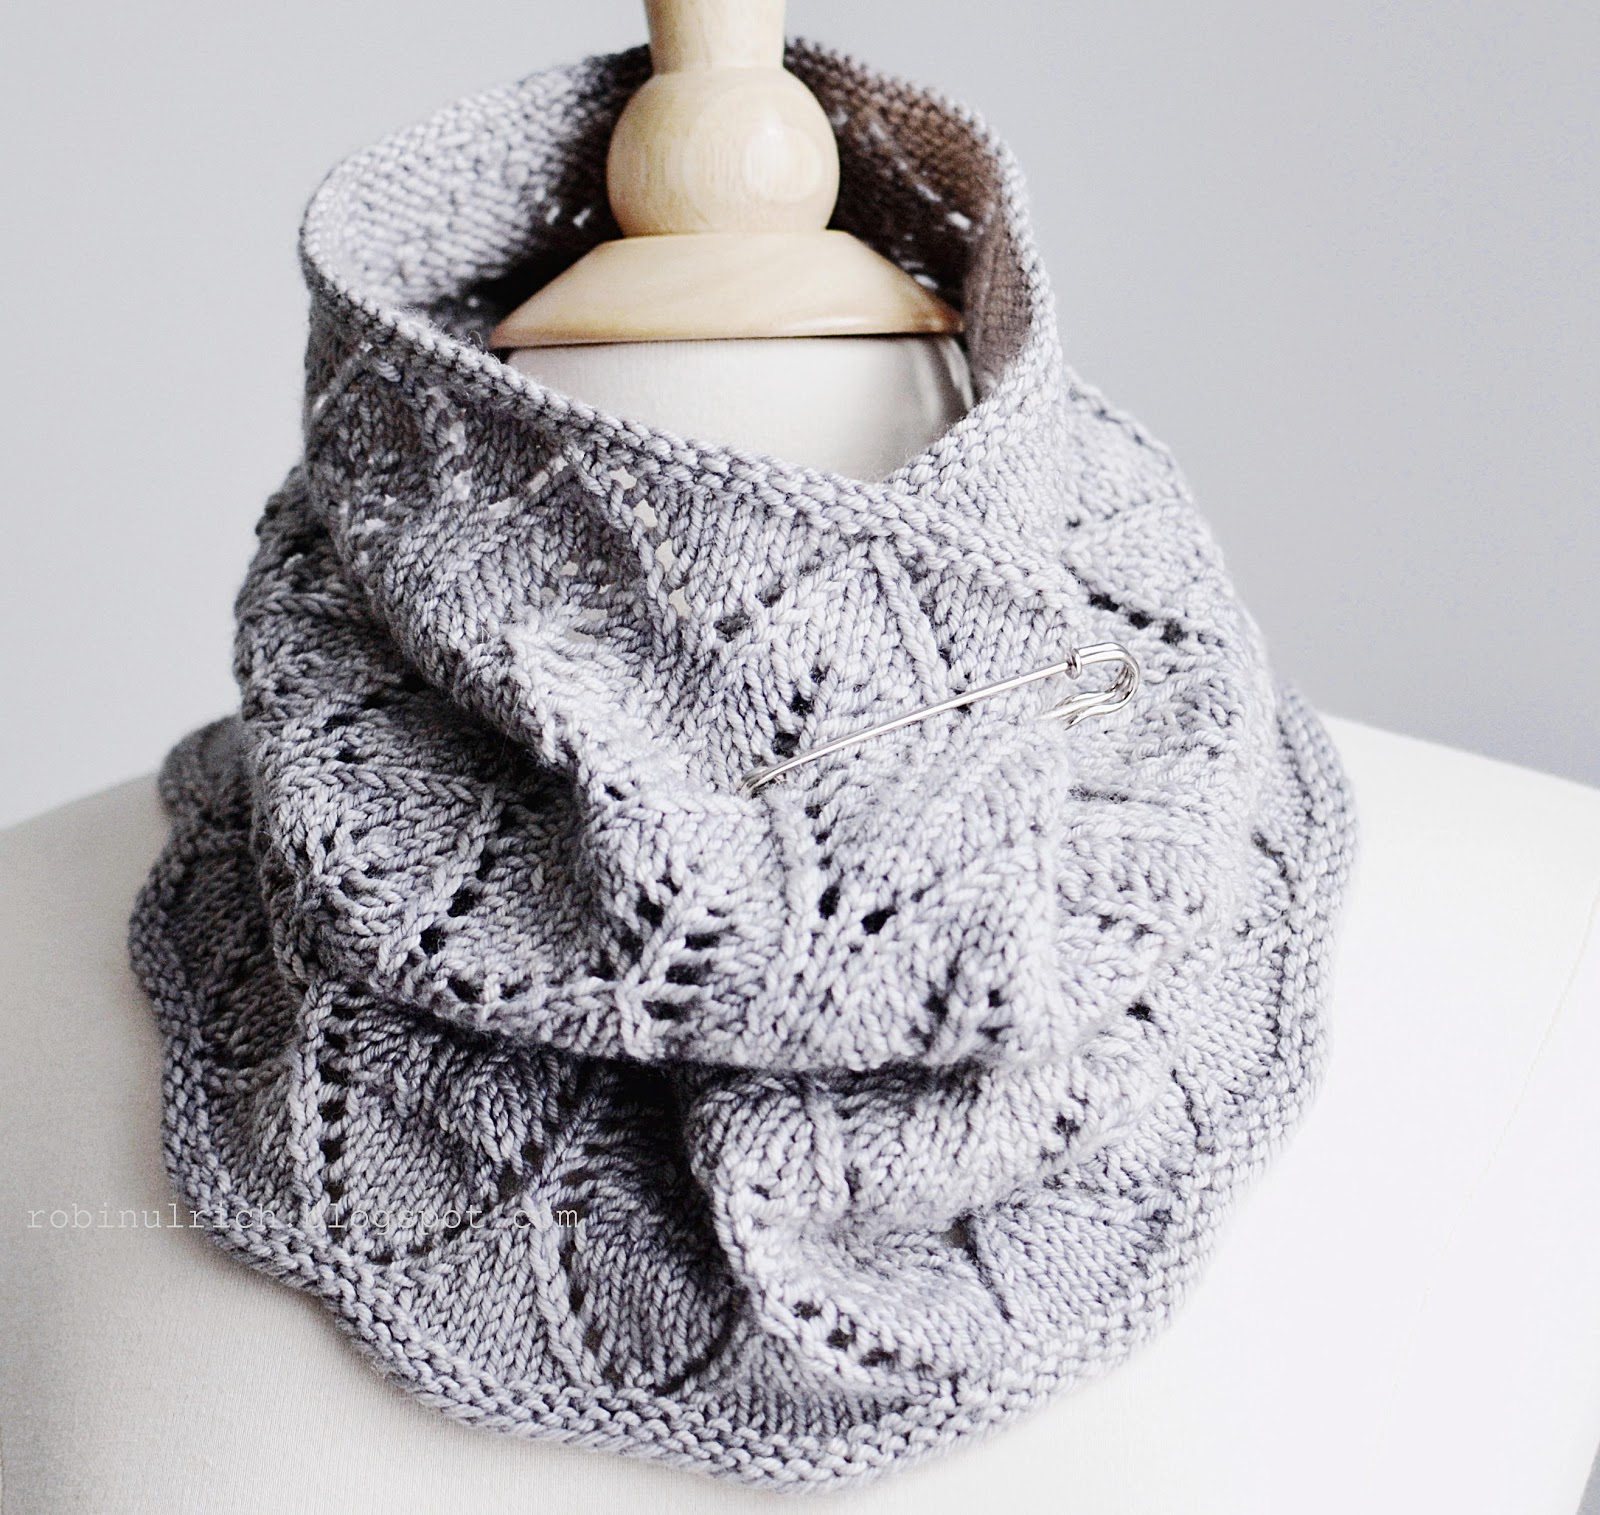 Knit Lace Cowl Pattern Gallery - handicraft ideas home decorating